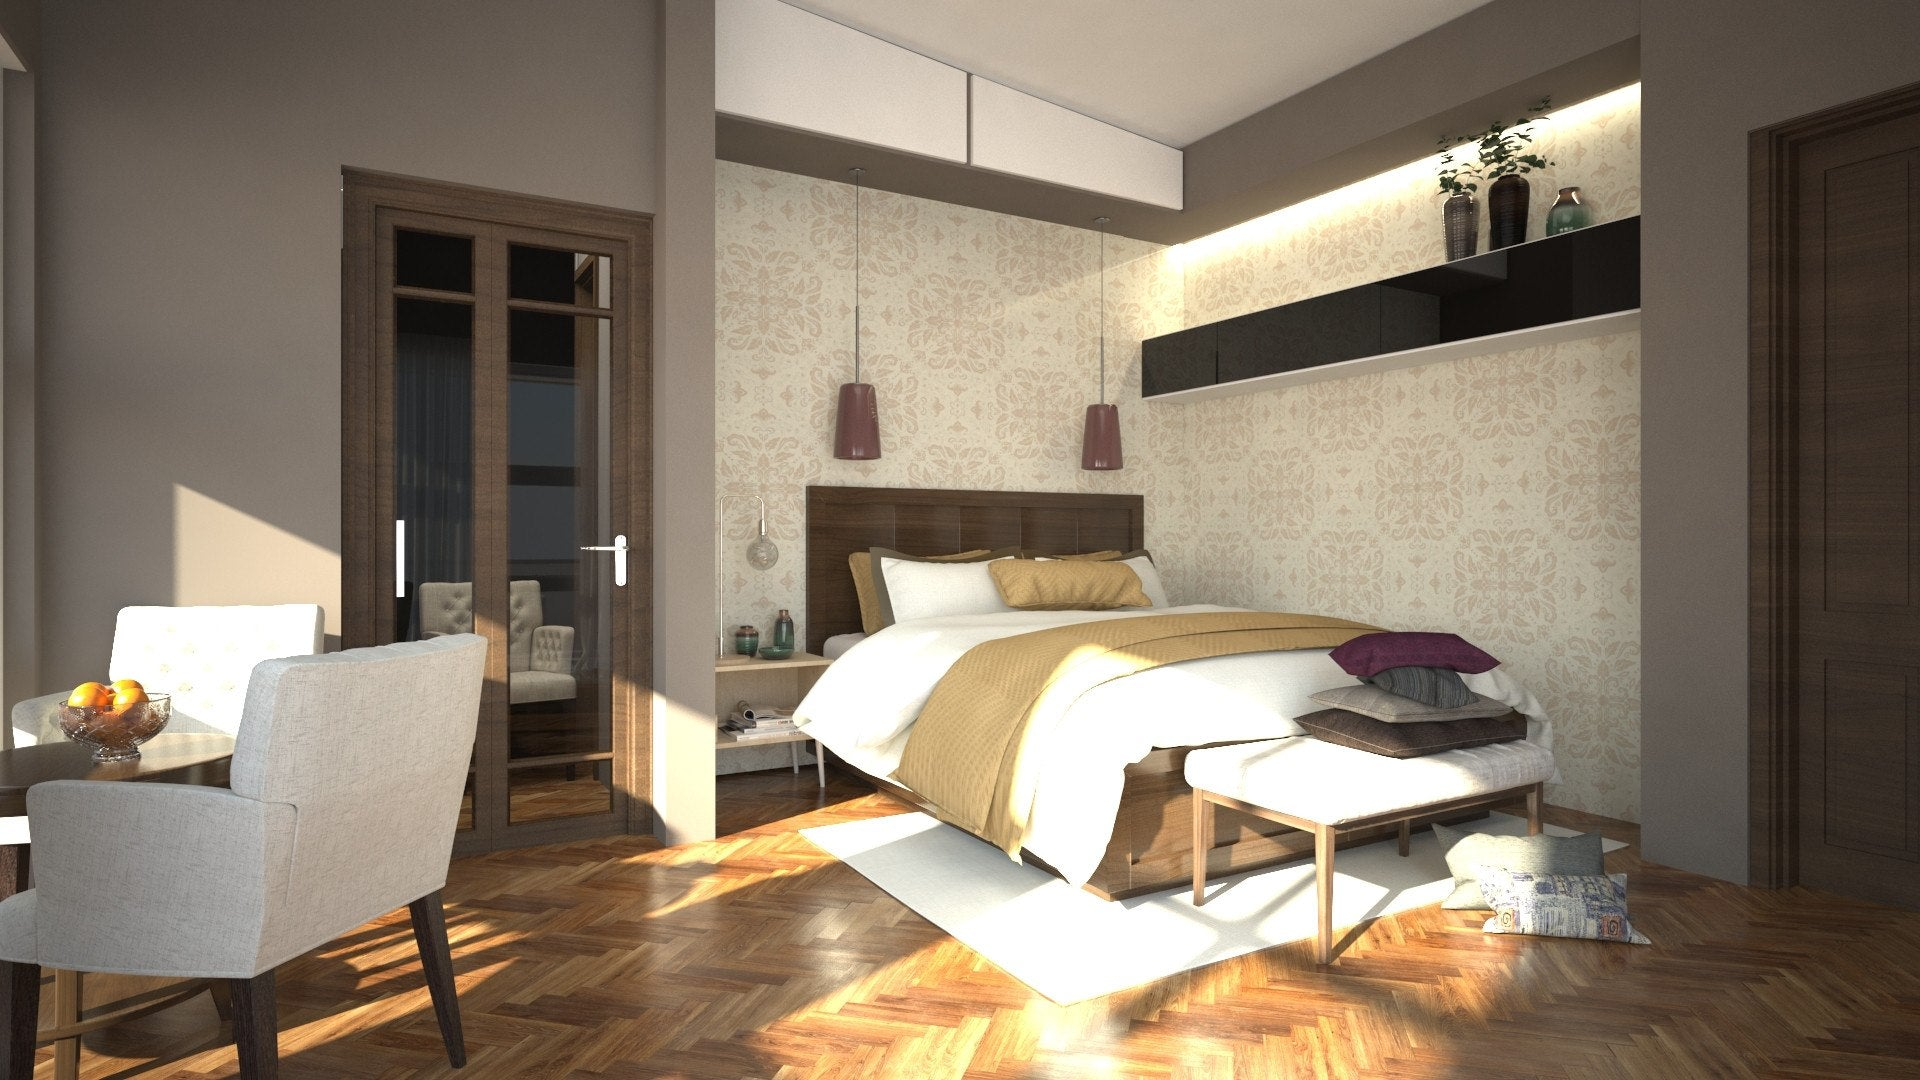 House design bedroom - Modern 5 Bedroom House Design Id 25603 Floor Plans By Maramani